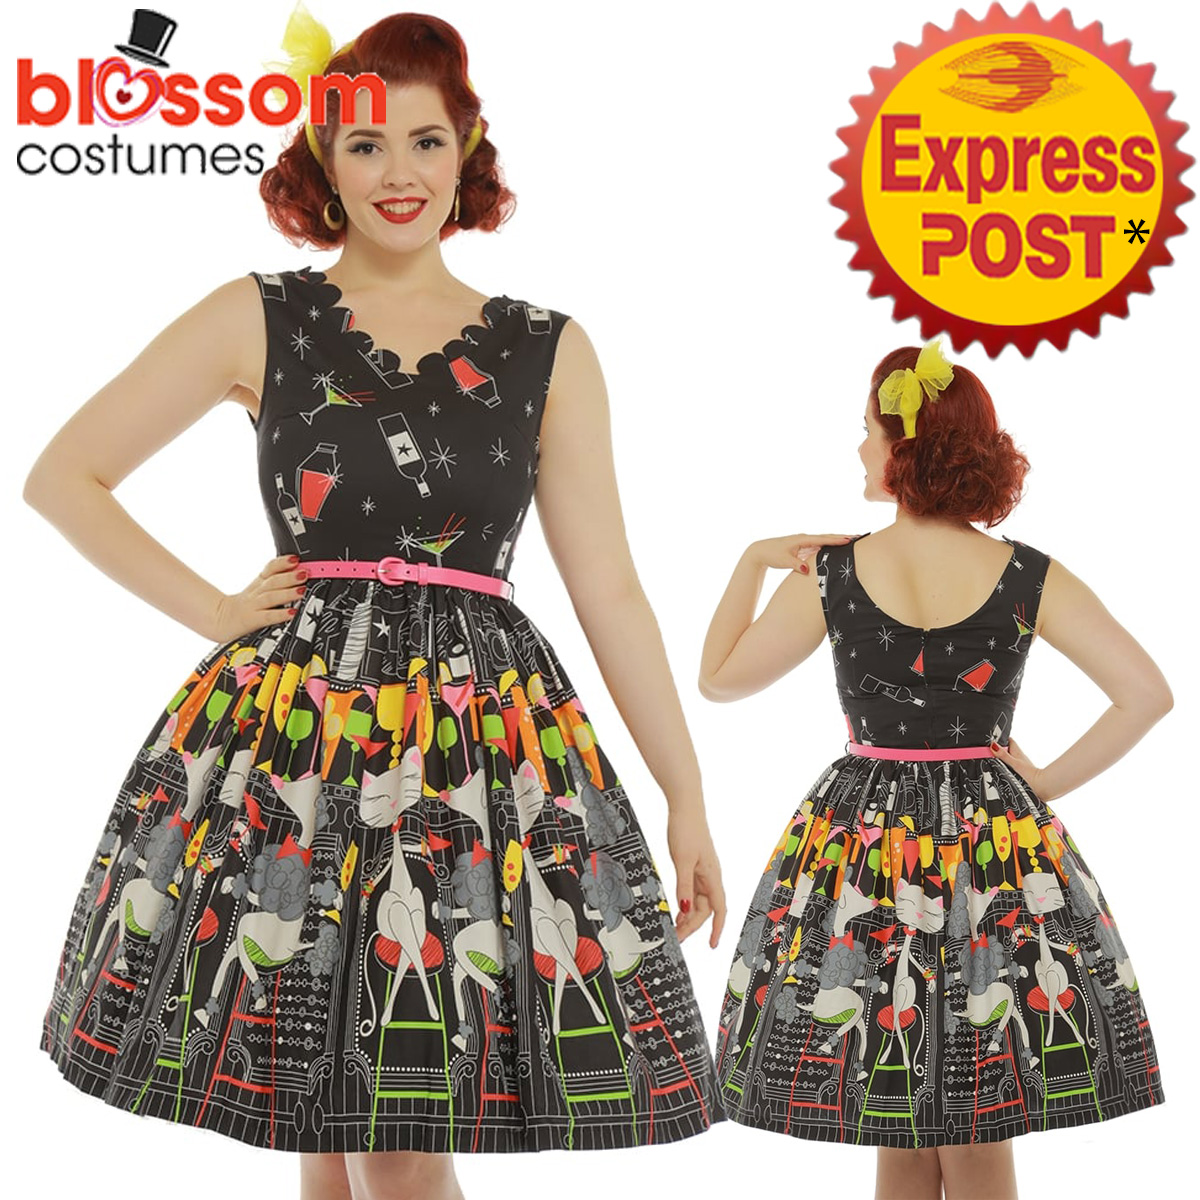 RKB50 Lindy Bop \'Daria\' Cocktail Bar Print Swing 50s Vintage ...